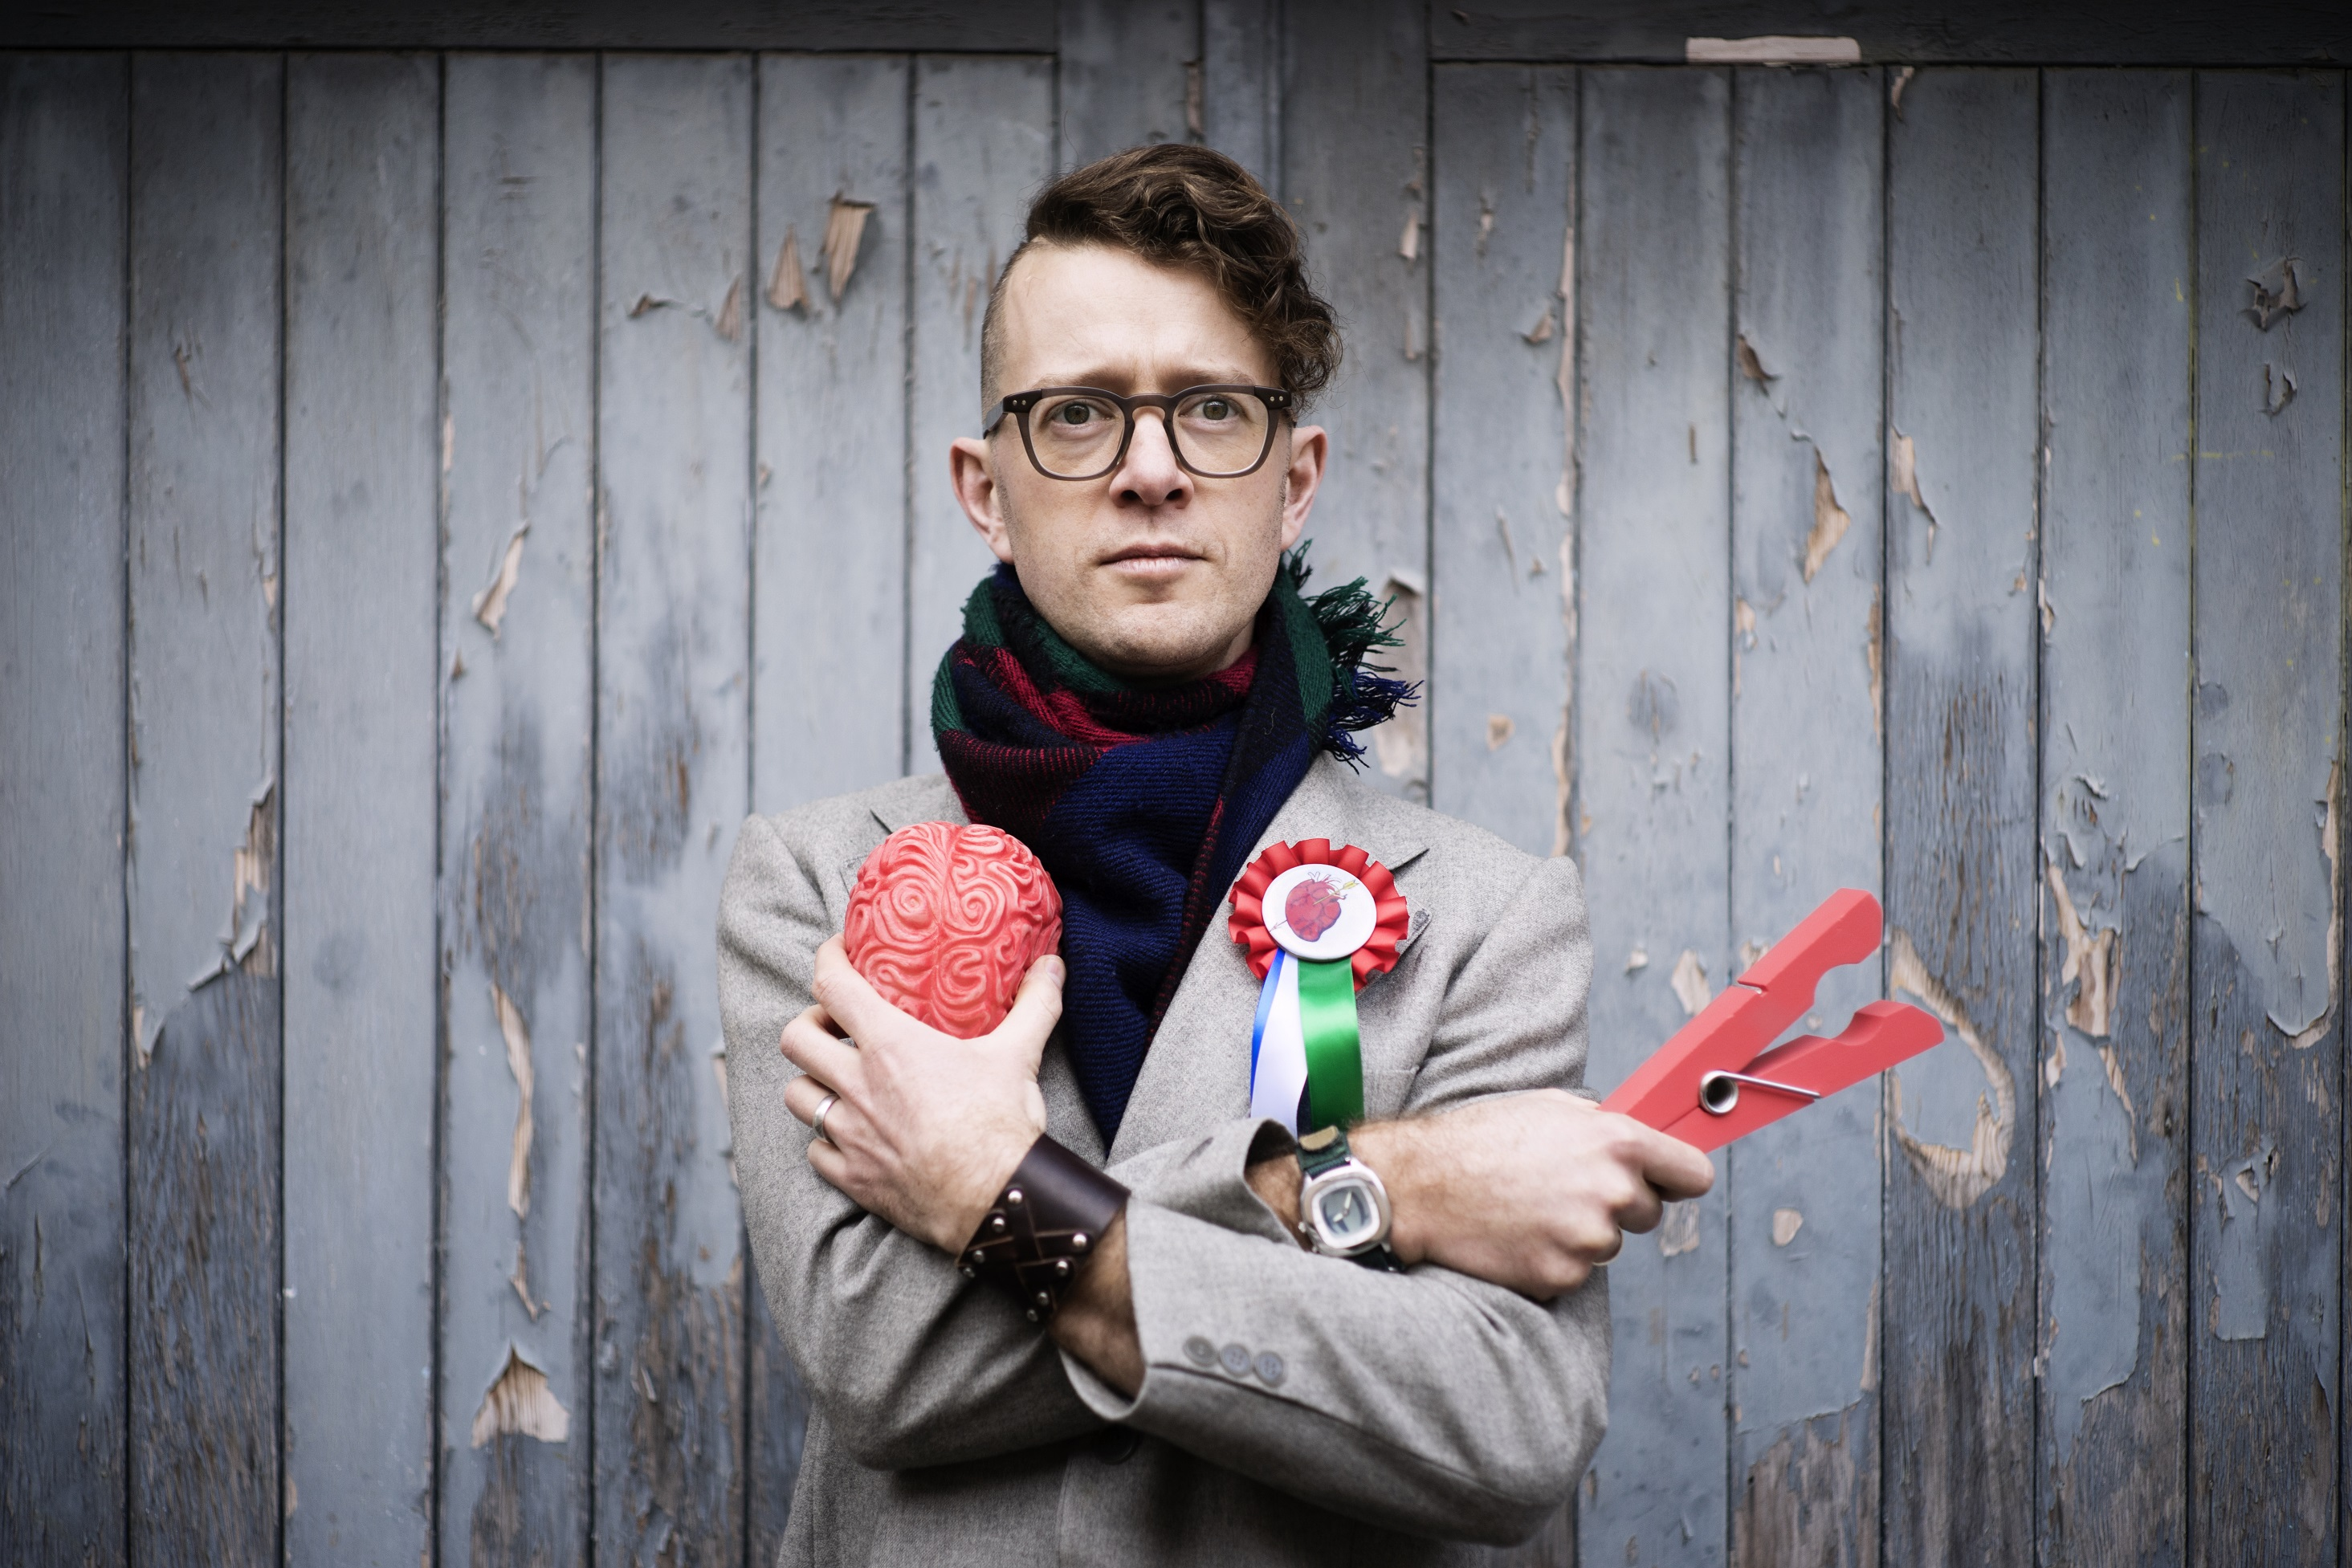 Caleb Parkin crosses his arms, holding a model of a brain in one hand and a giant coral-coloured clothes peg in the other